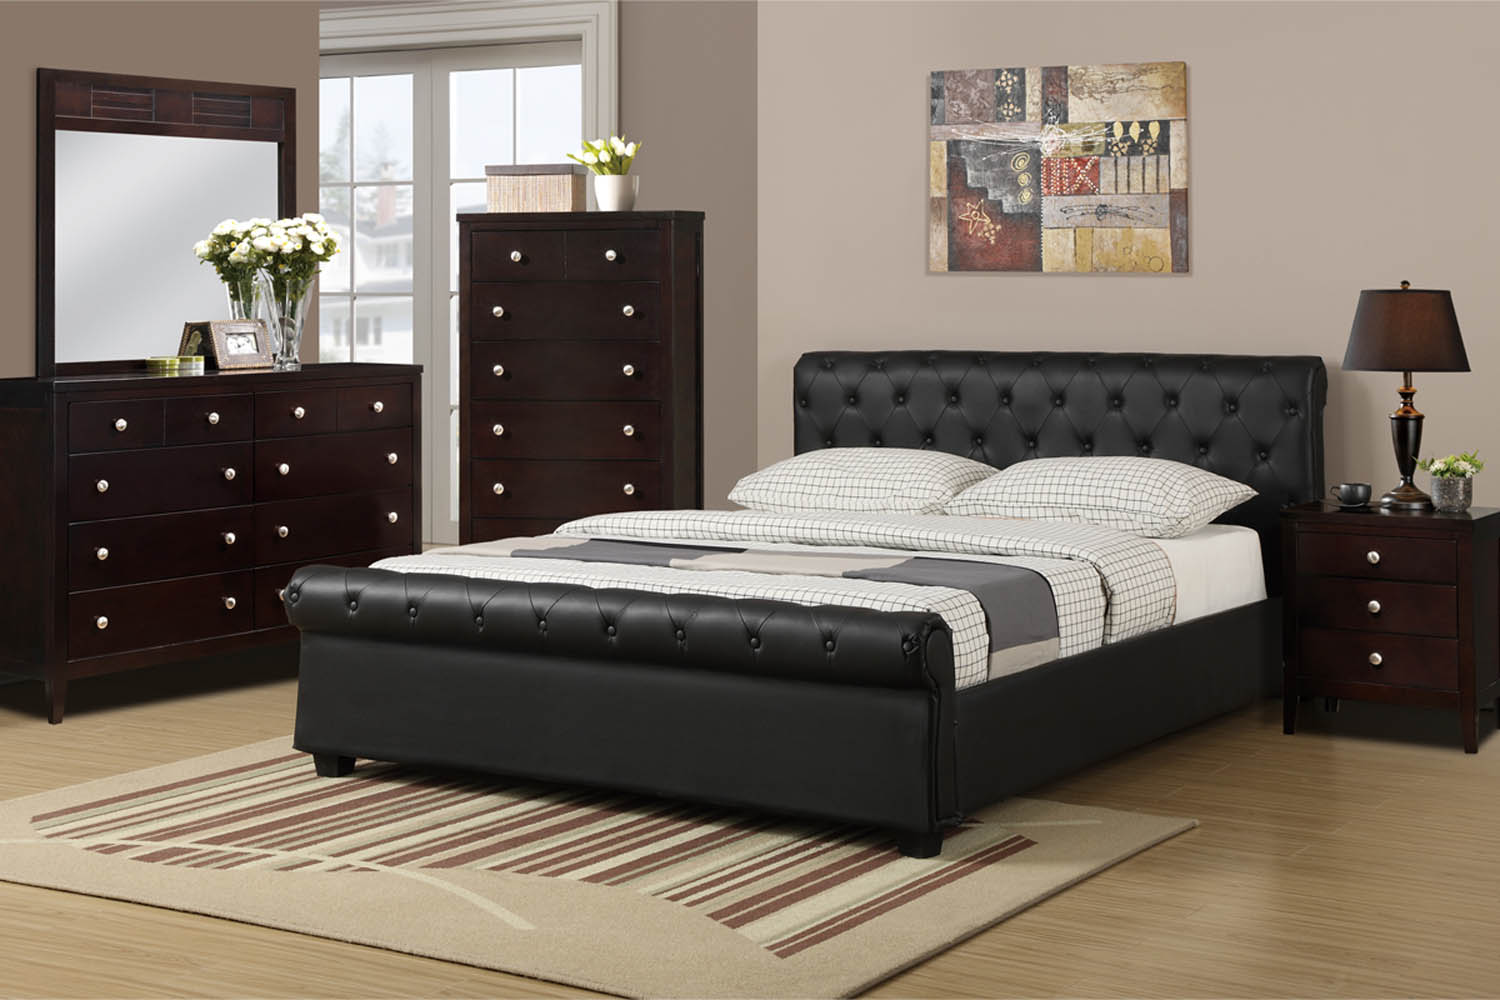 Queen black faux leather bed frame for Queen bed frame and dresser set